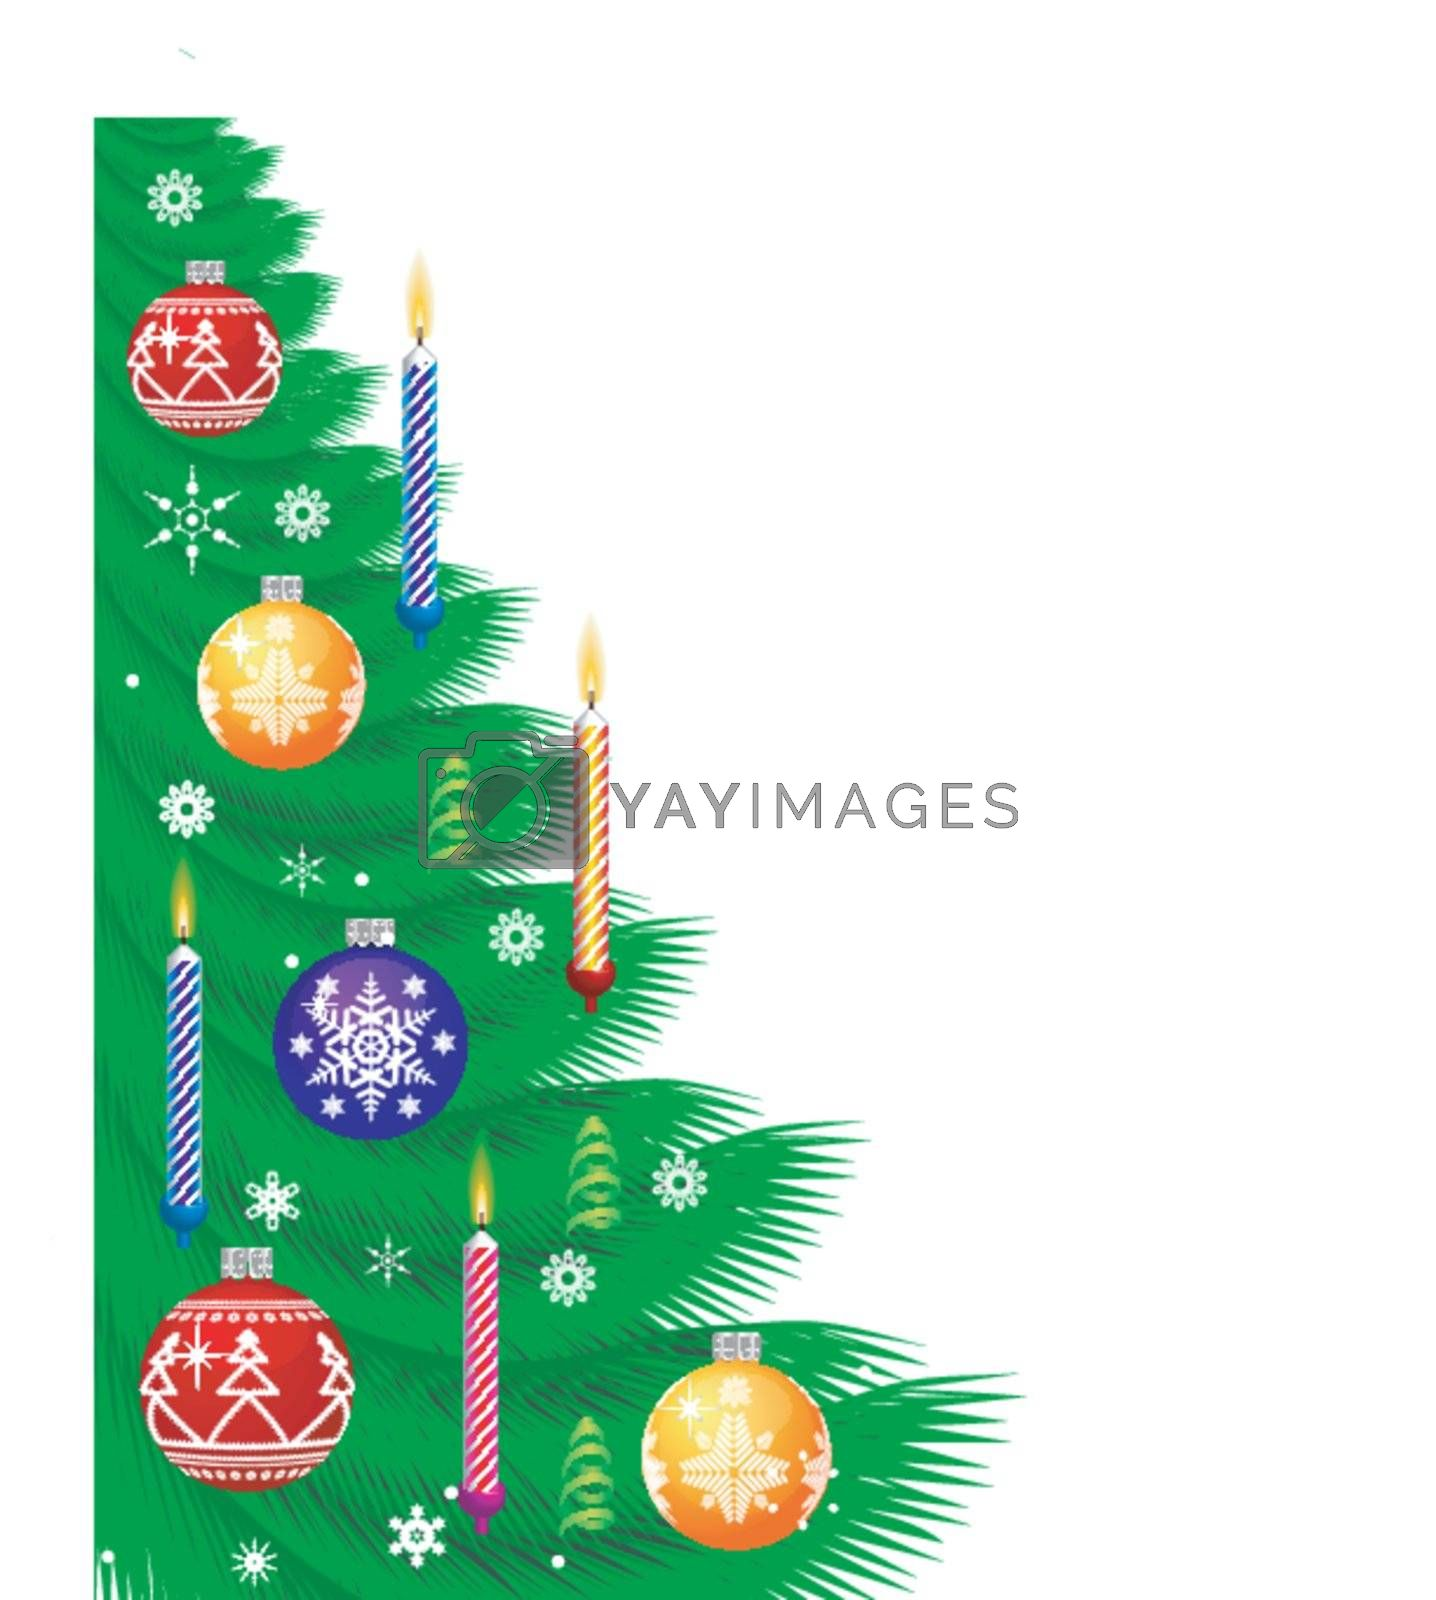 Christmas Background with new year tree, candle, snowflakes